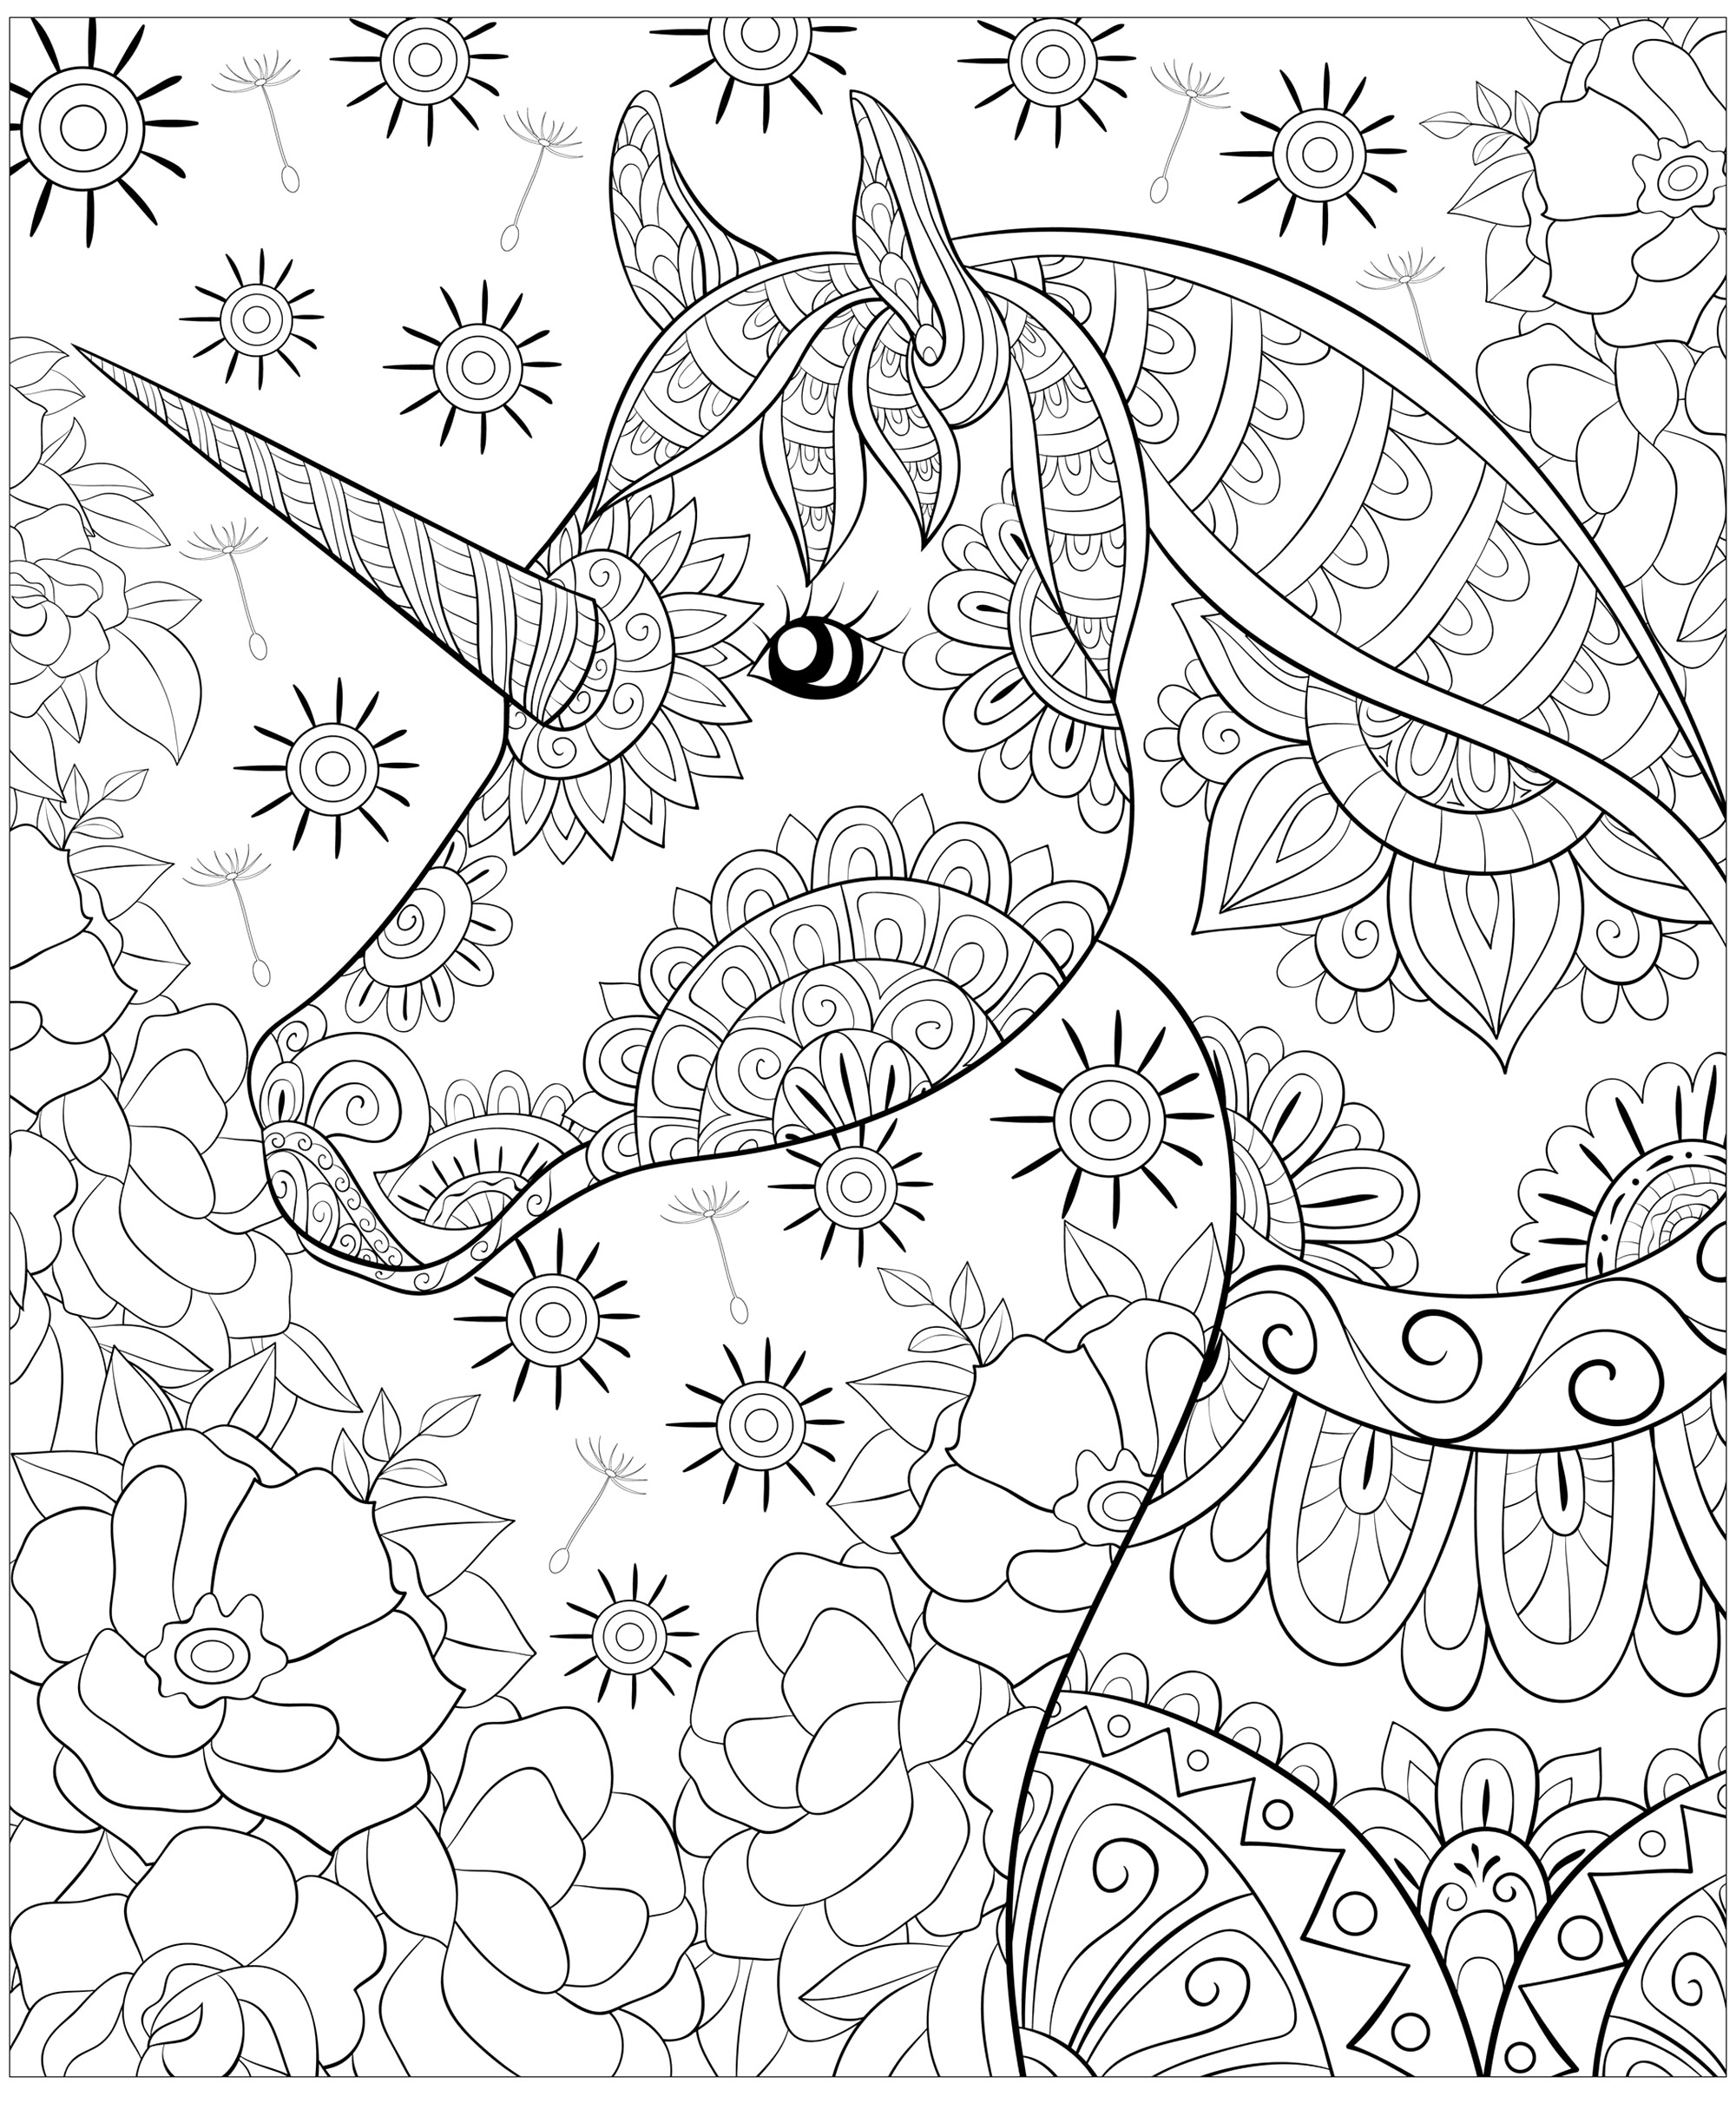 coloring pages for adults unicorn unicorn coloring pages coloringrocks pages coloring for adults unicorn